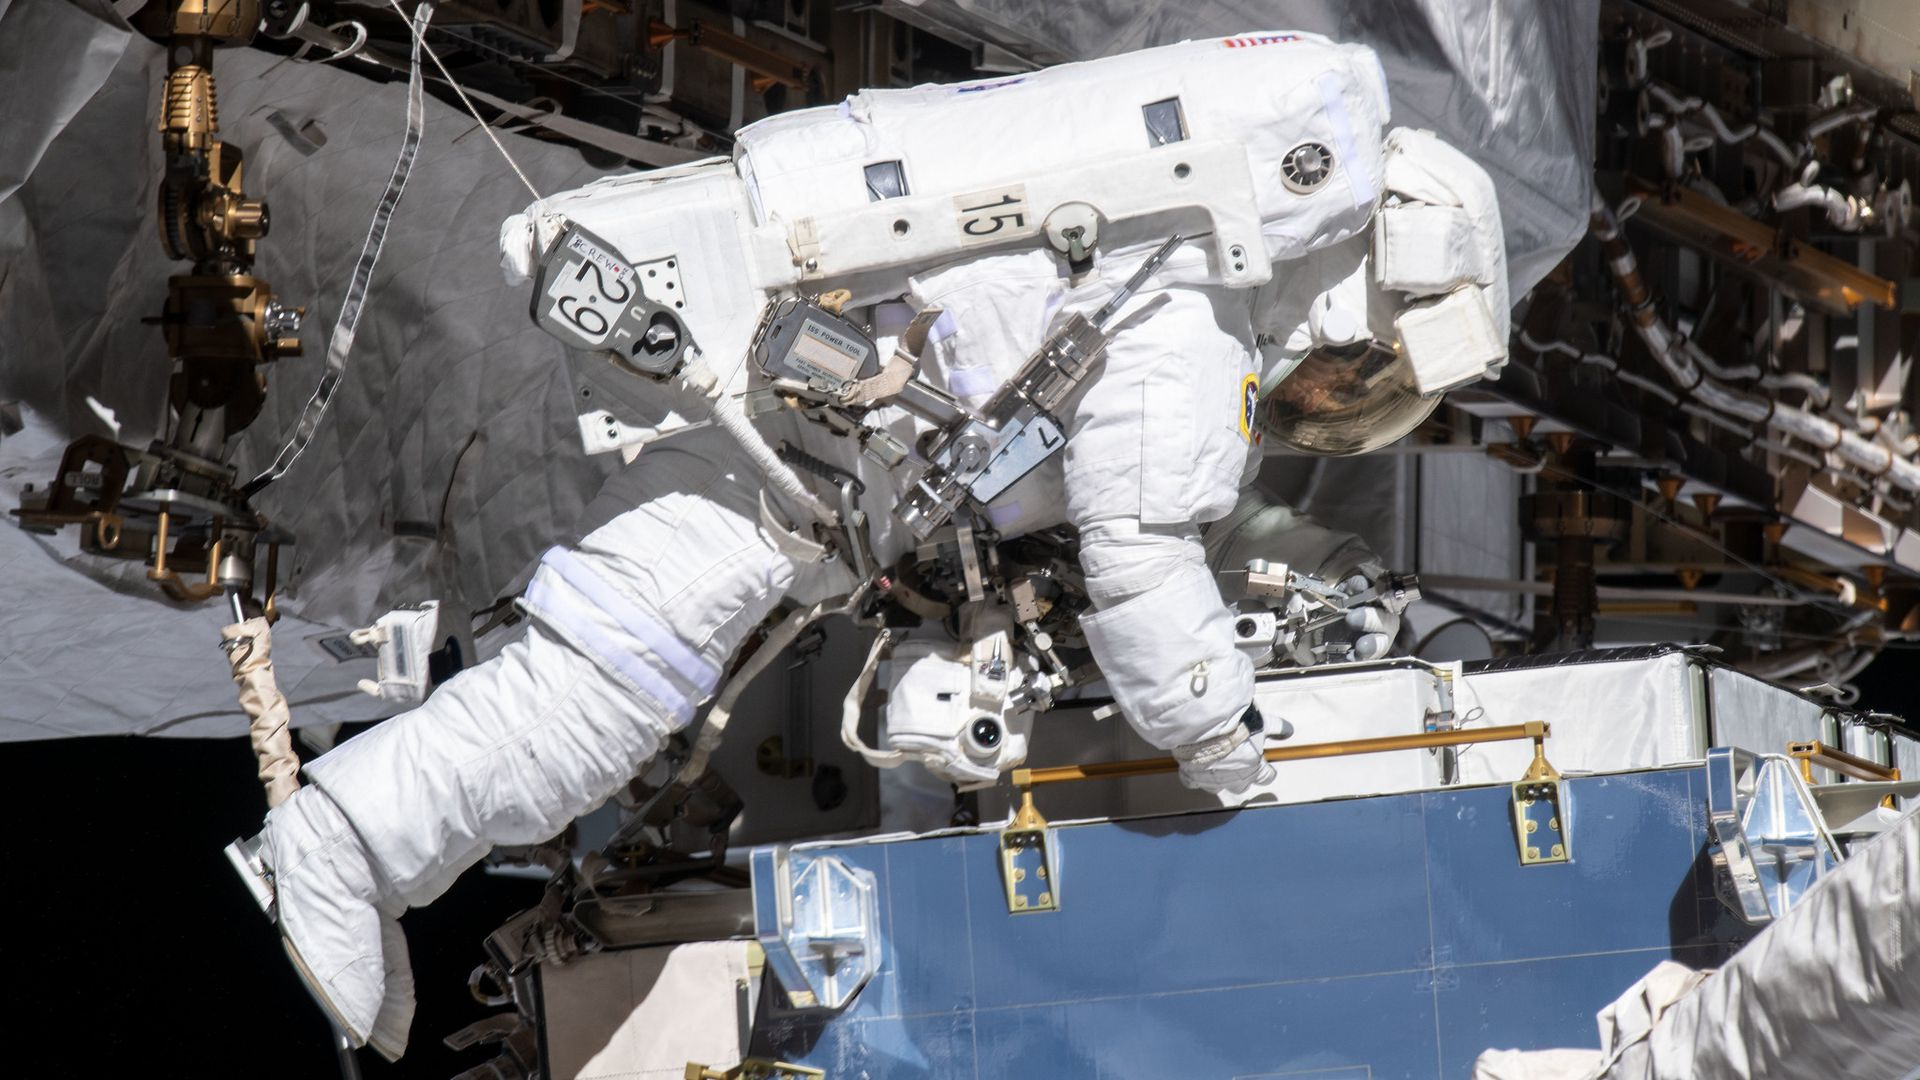 Historic, all-female spacewalk to take place this week